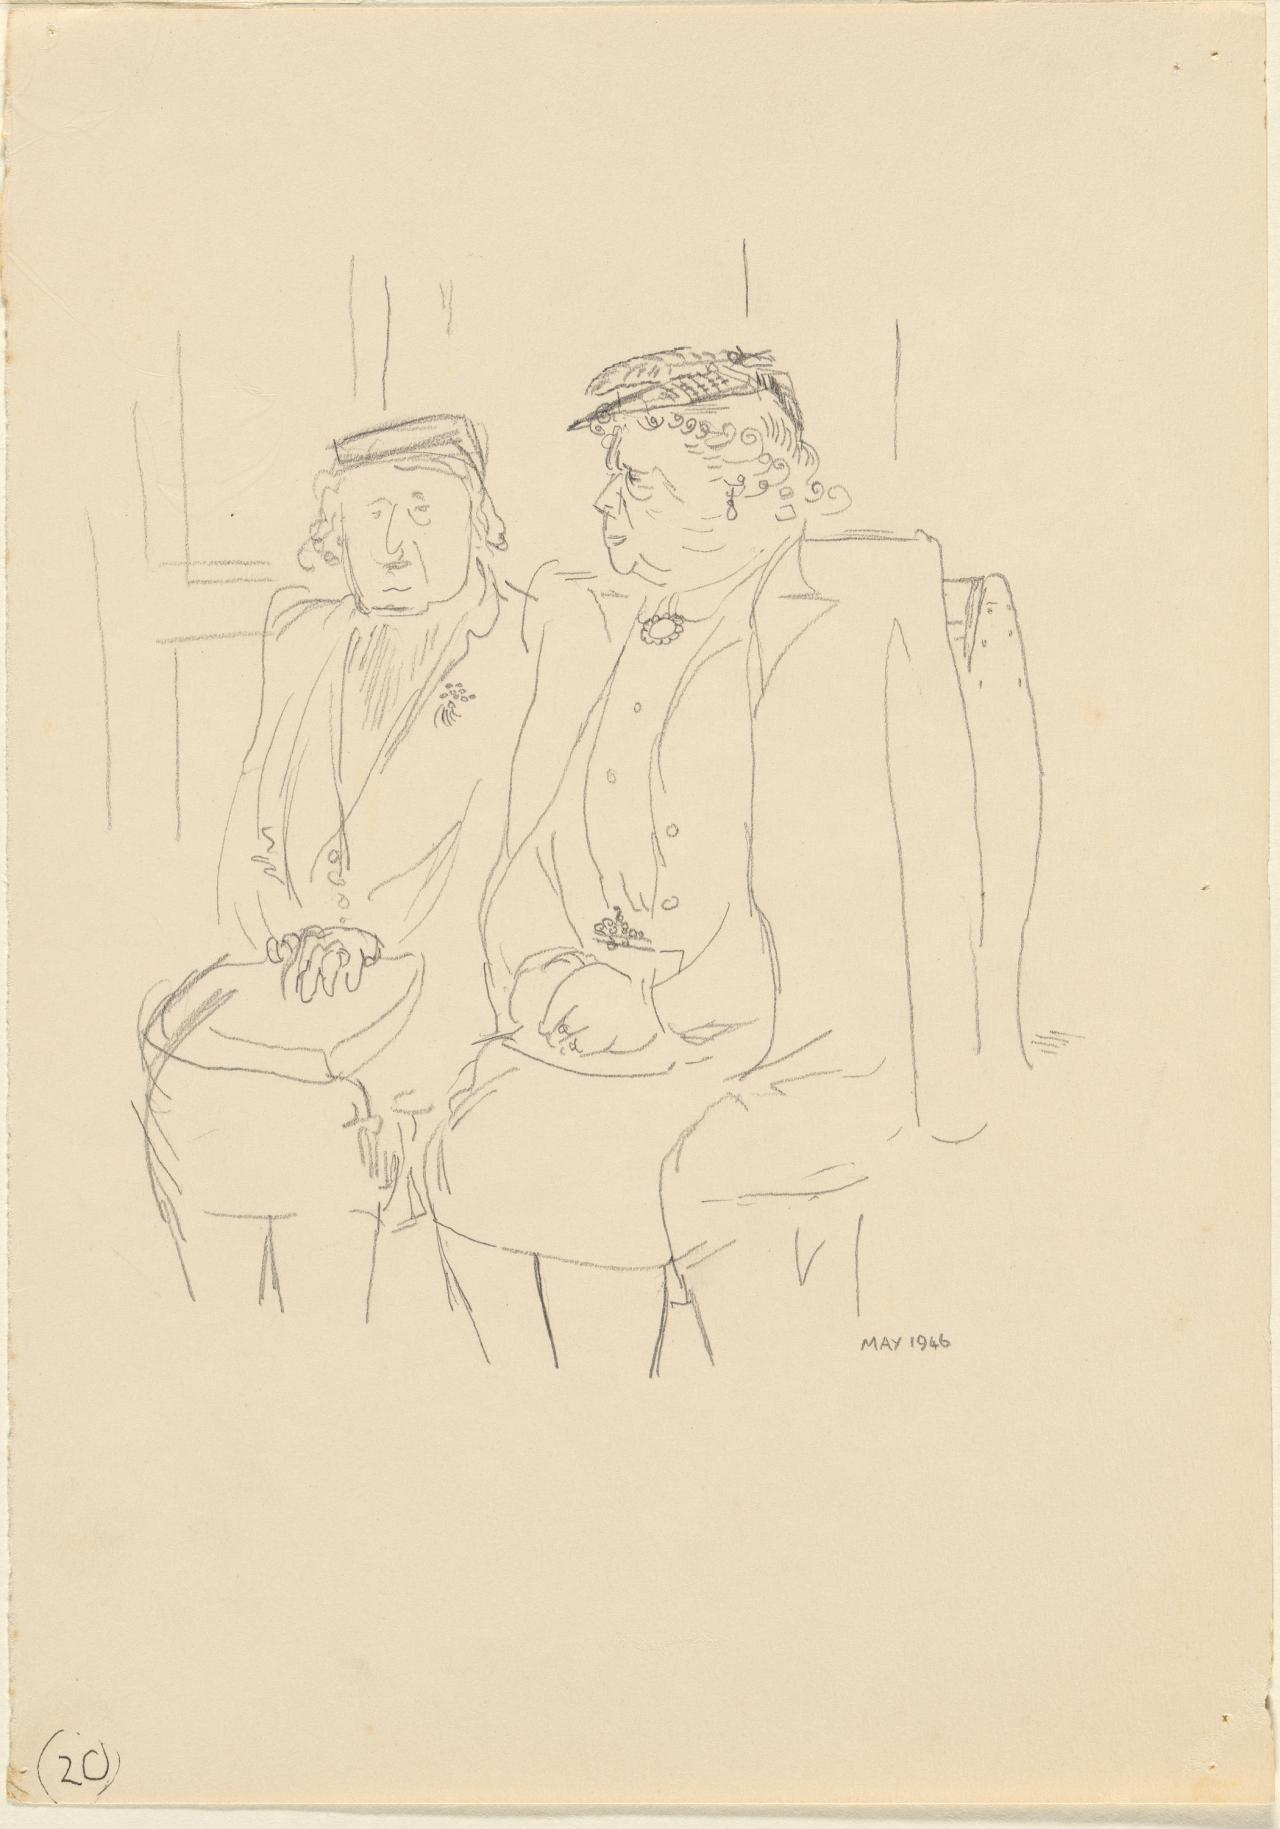 (Two women seated on a tram)